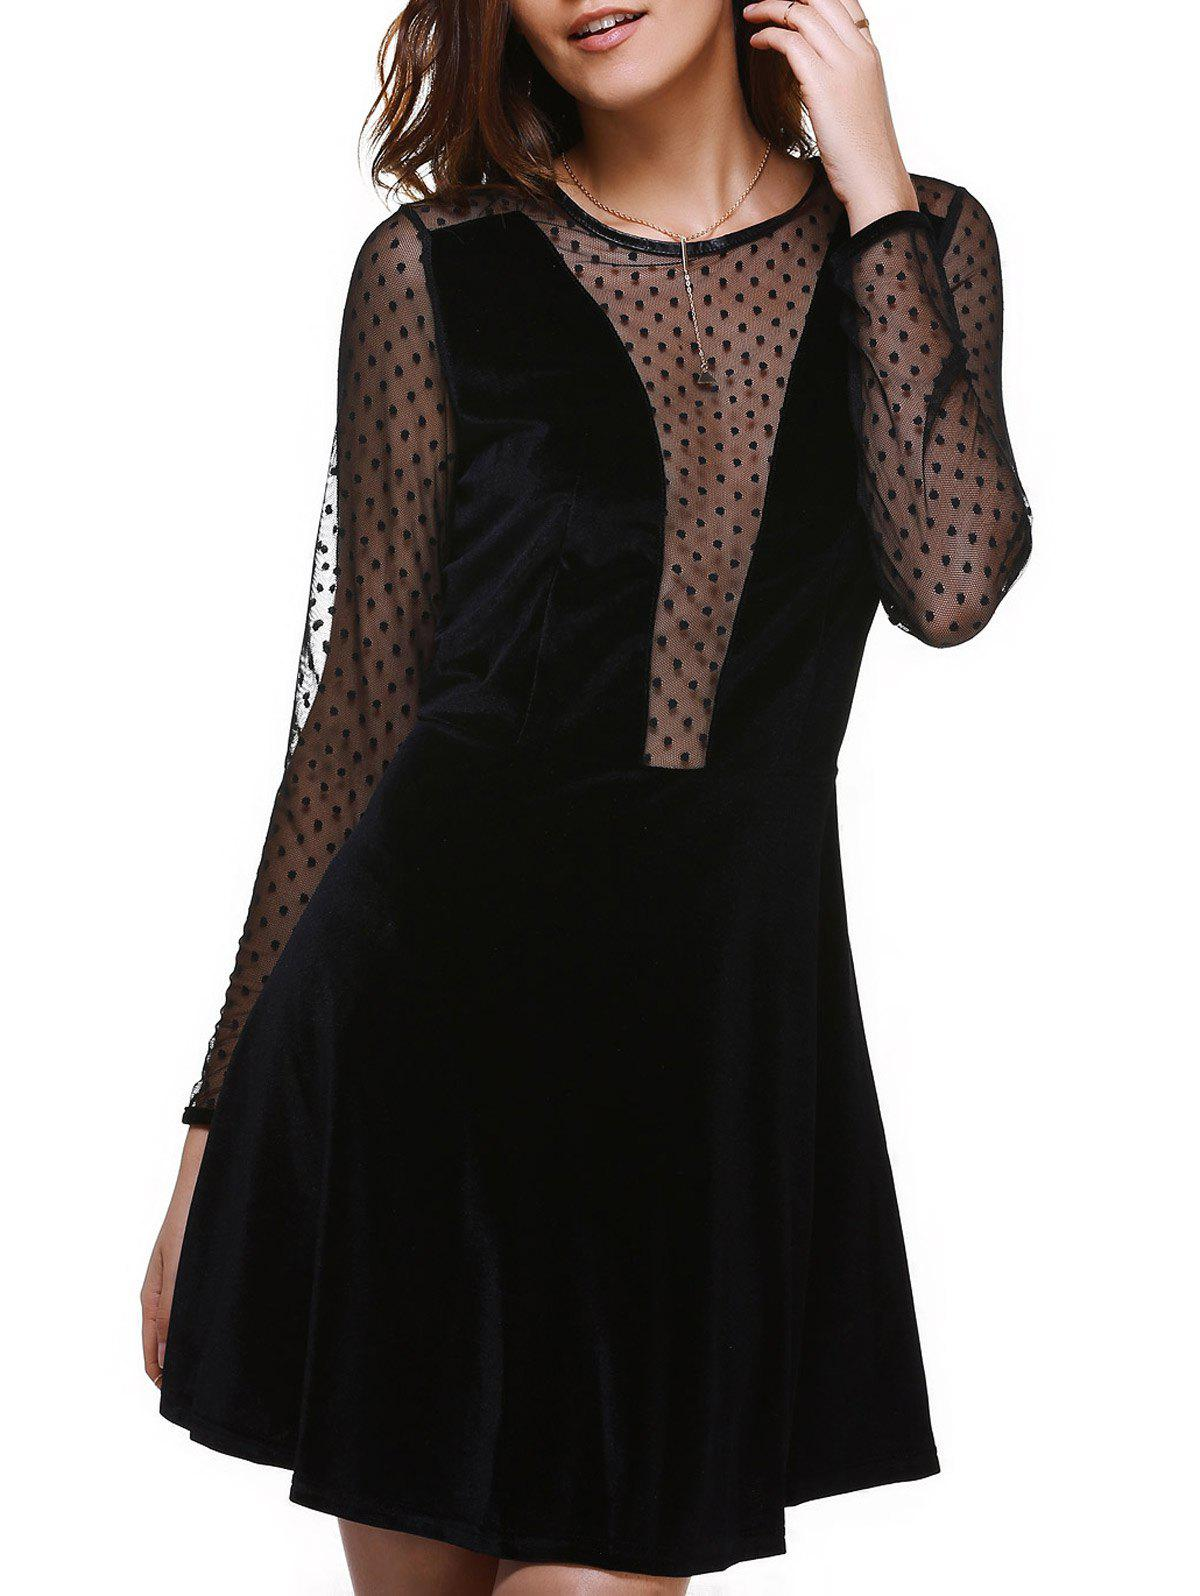 Alluring Spliced See-Through Long Sleeve Women's Dress - BLACK 2XL